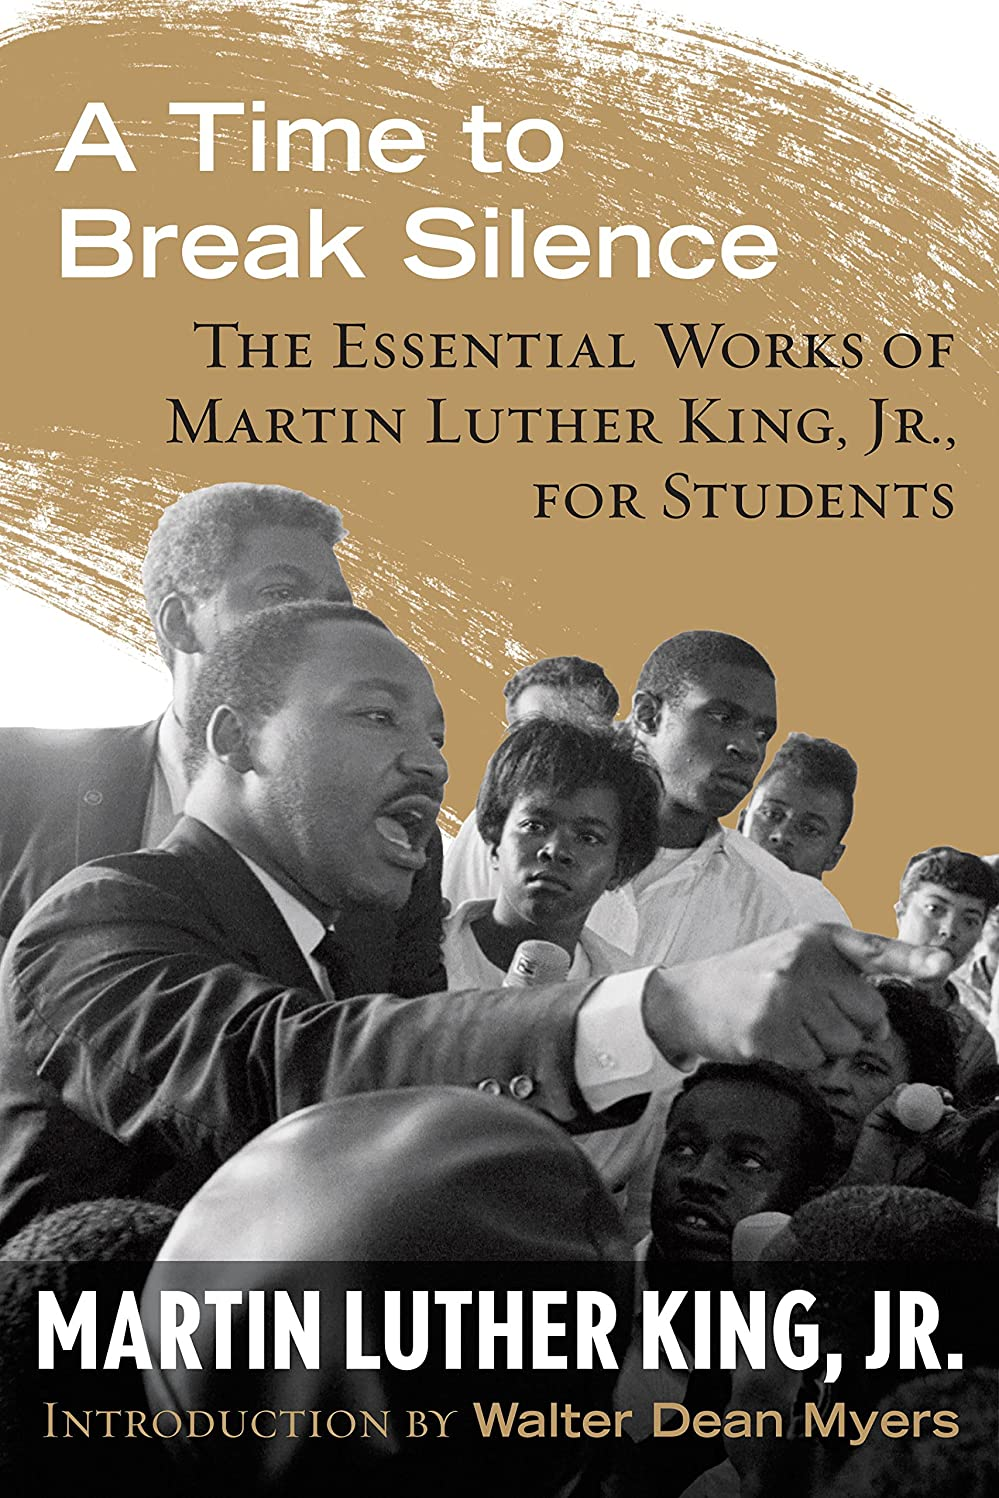 A Time to Break Silence: The Essential Works of Martin Luther King, Jr., for Students (King Legacy Book 10) (English Edition)